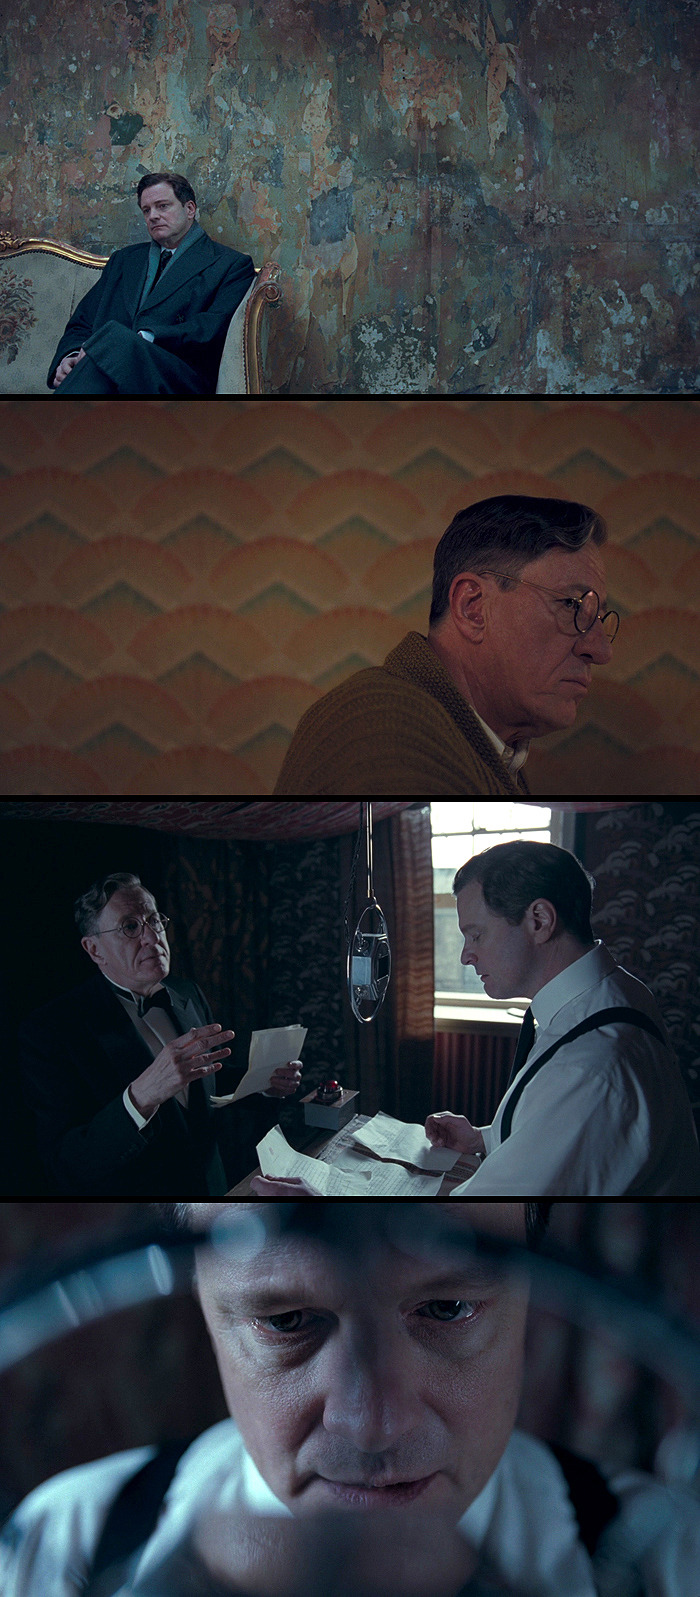 moviesinframes:  The Kings Speech, 2010 (dir. Tom Hooper)By area39